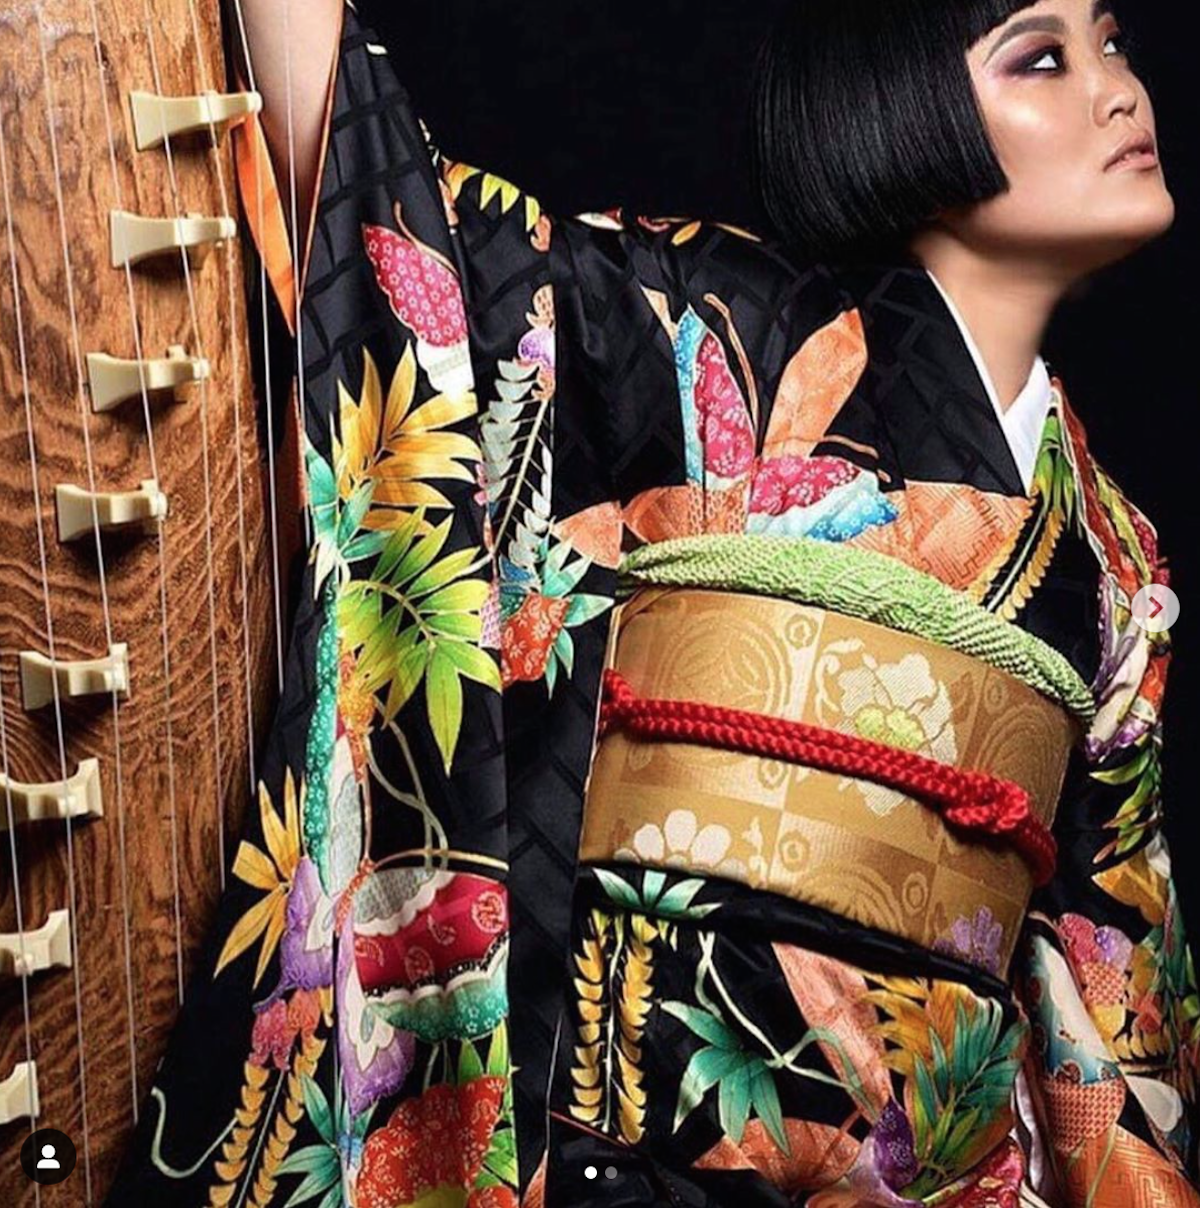 Askua Koto, koto, music, fashion, calligraphy, Kaede Kimonos, NYC, Japan, exhibition, performance